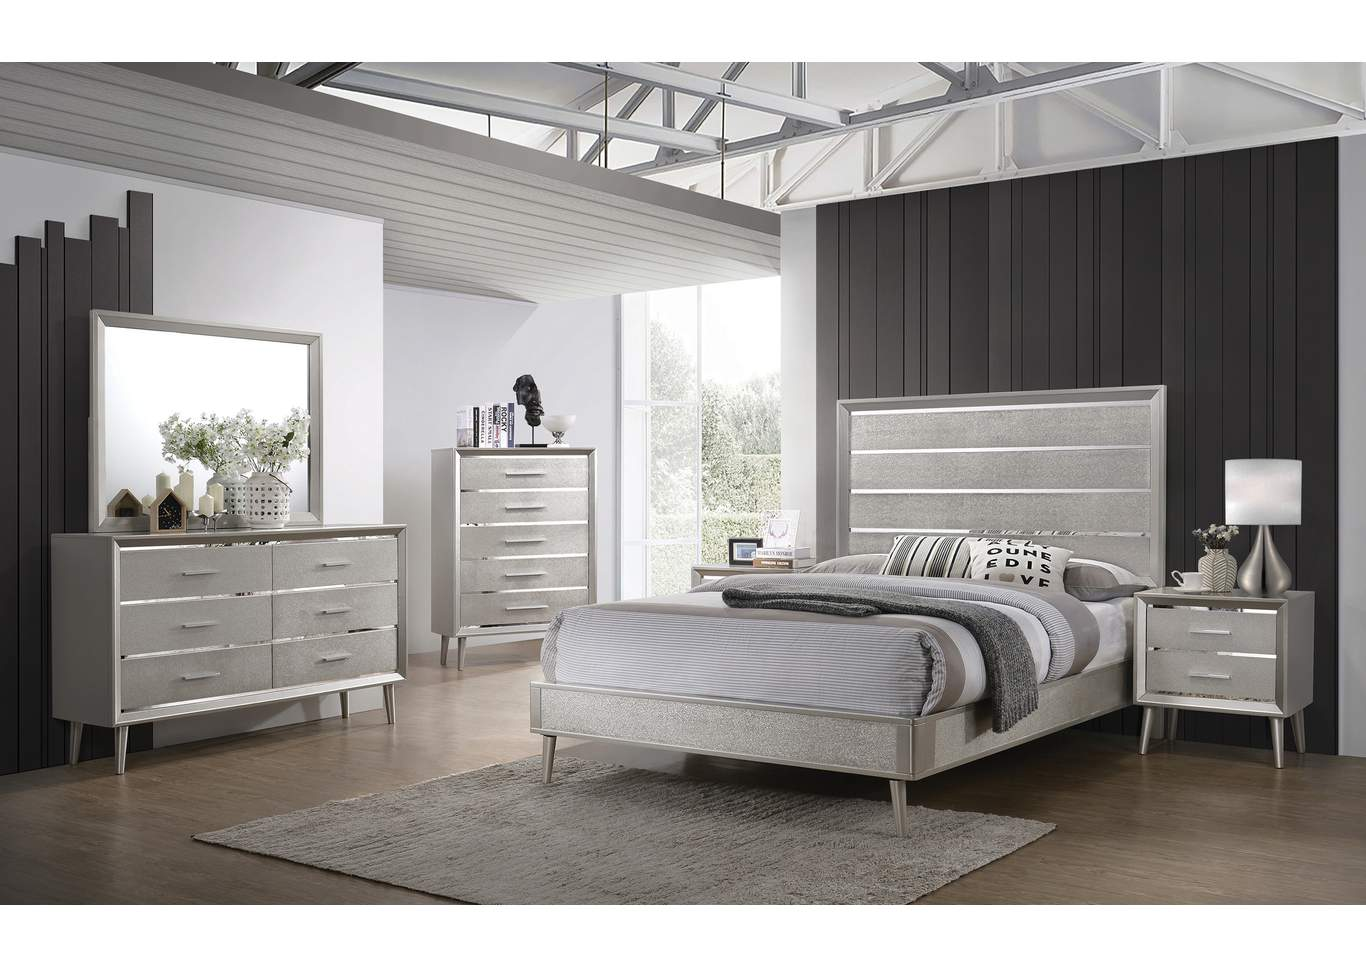 Delta Eastern King Bed,Coaster Furniture